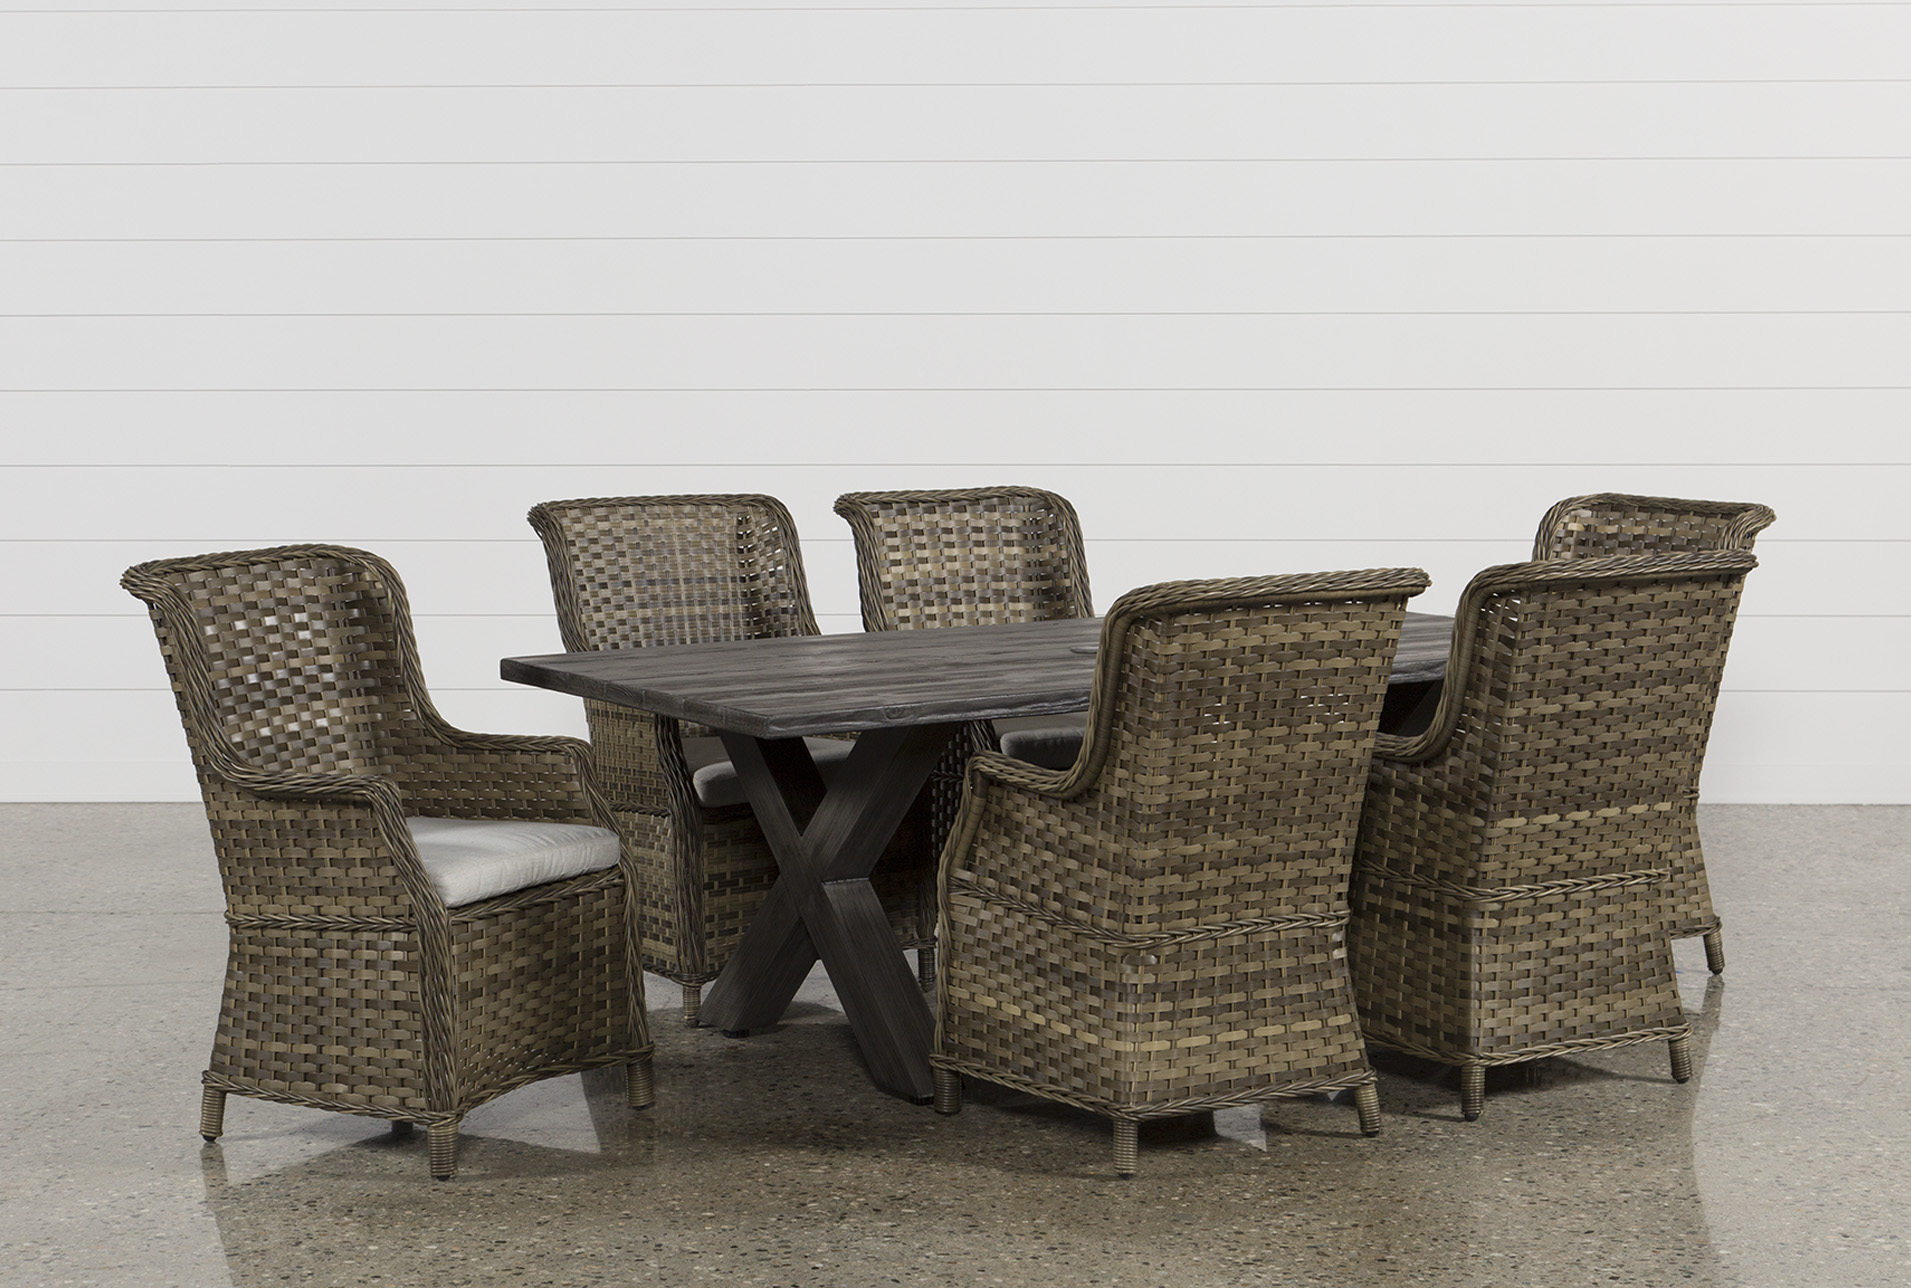 Outdoor Tortuga 7 Piece Dining Set W/Aventura Side Chair (Qty: 1) Has Been  Successfully Added To Your Cart.